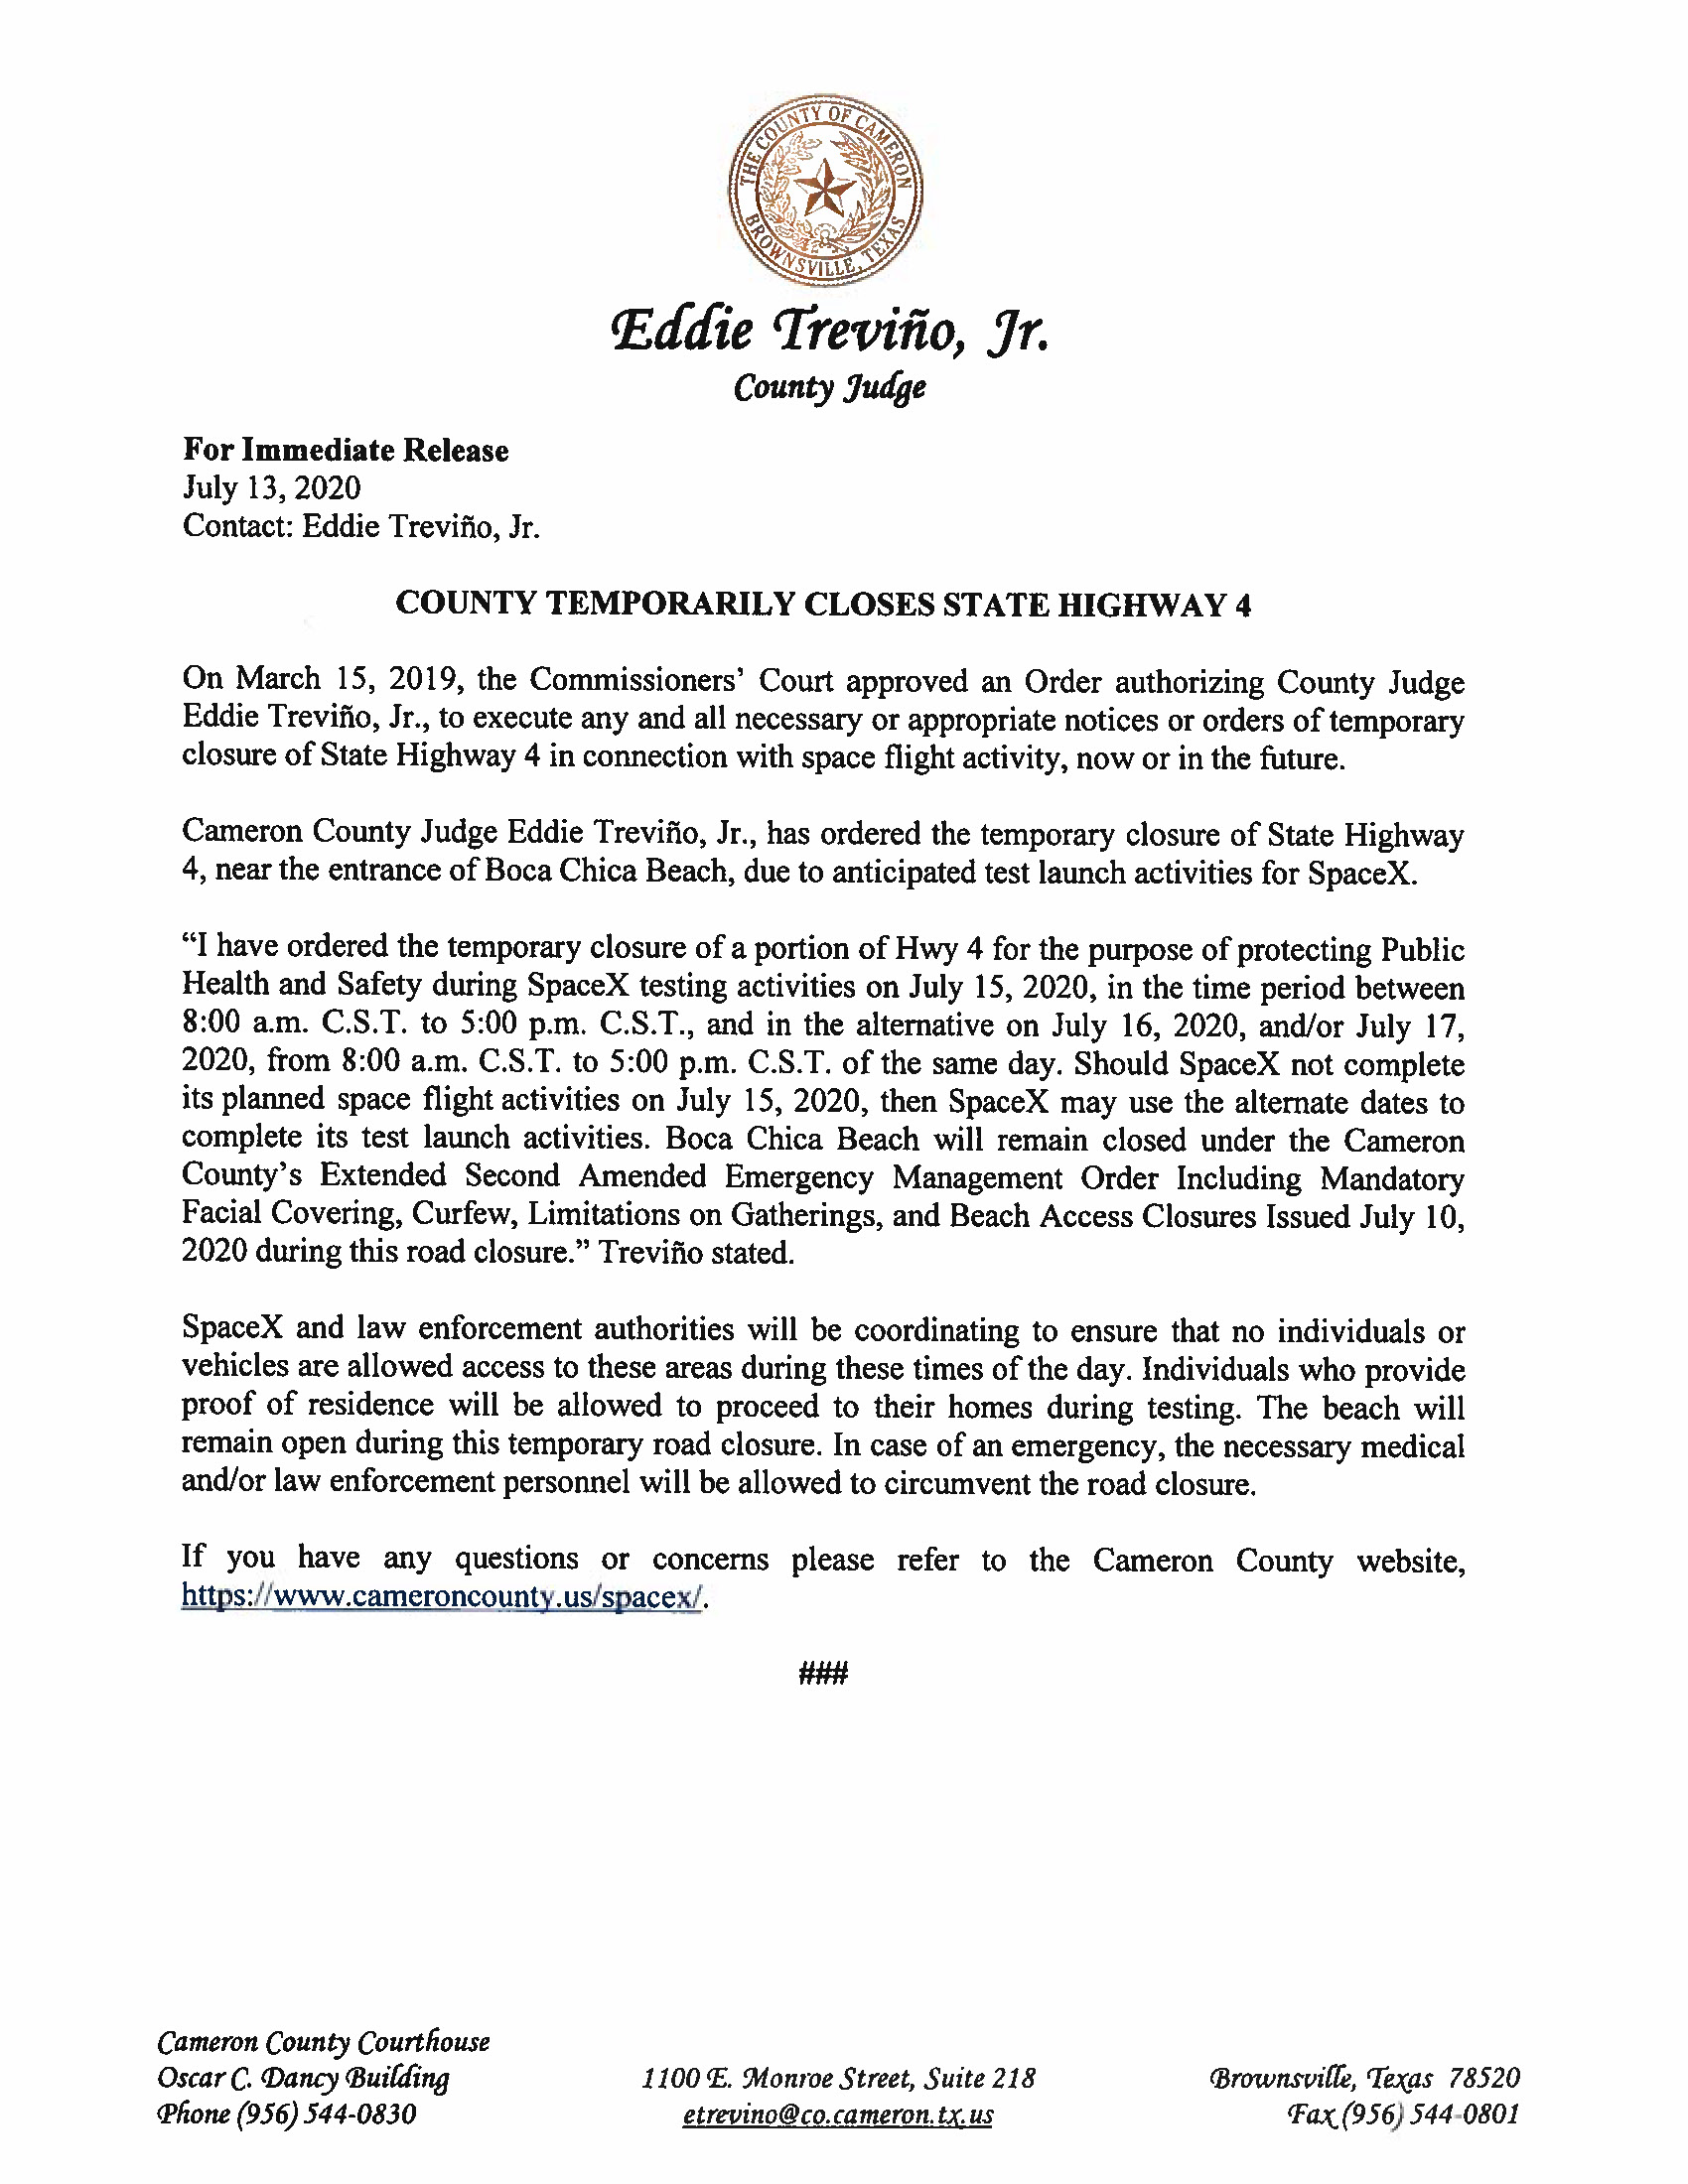 Press Release In English And Spanish 07.15.20 Page 1